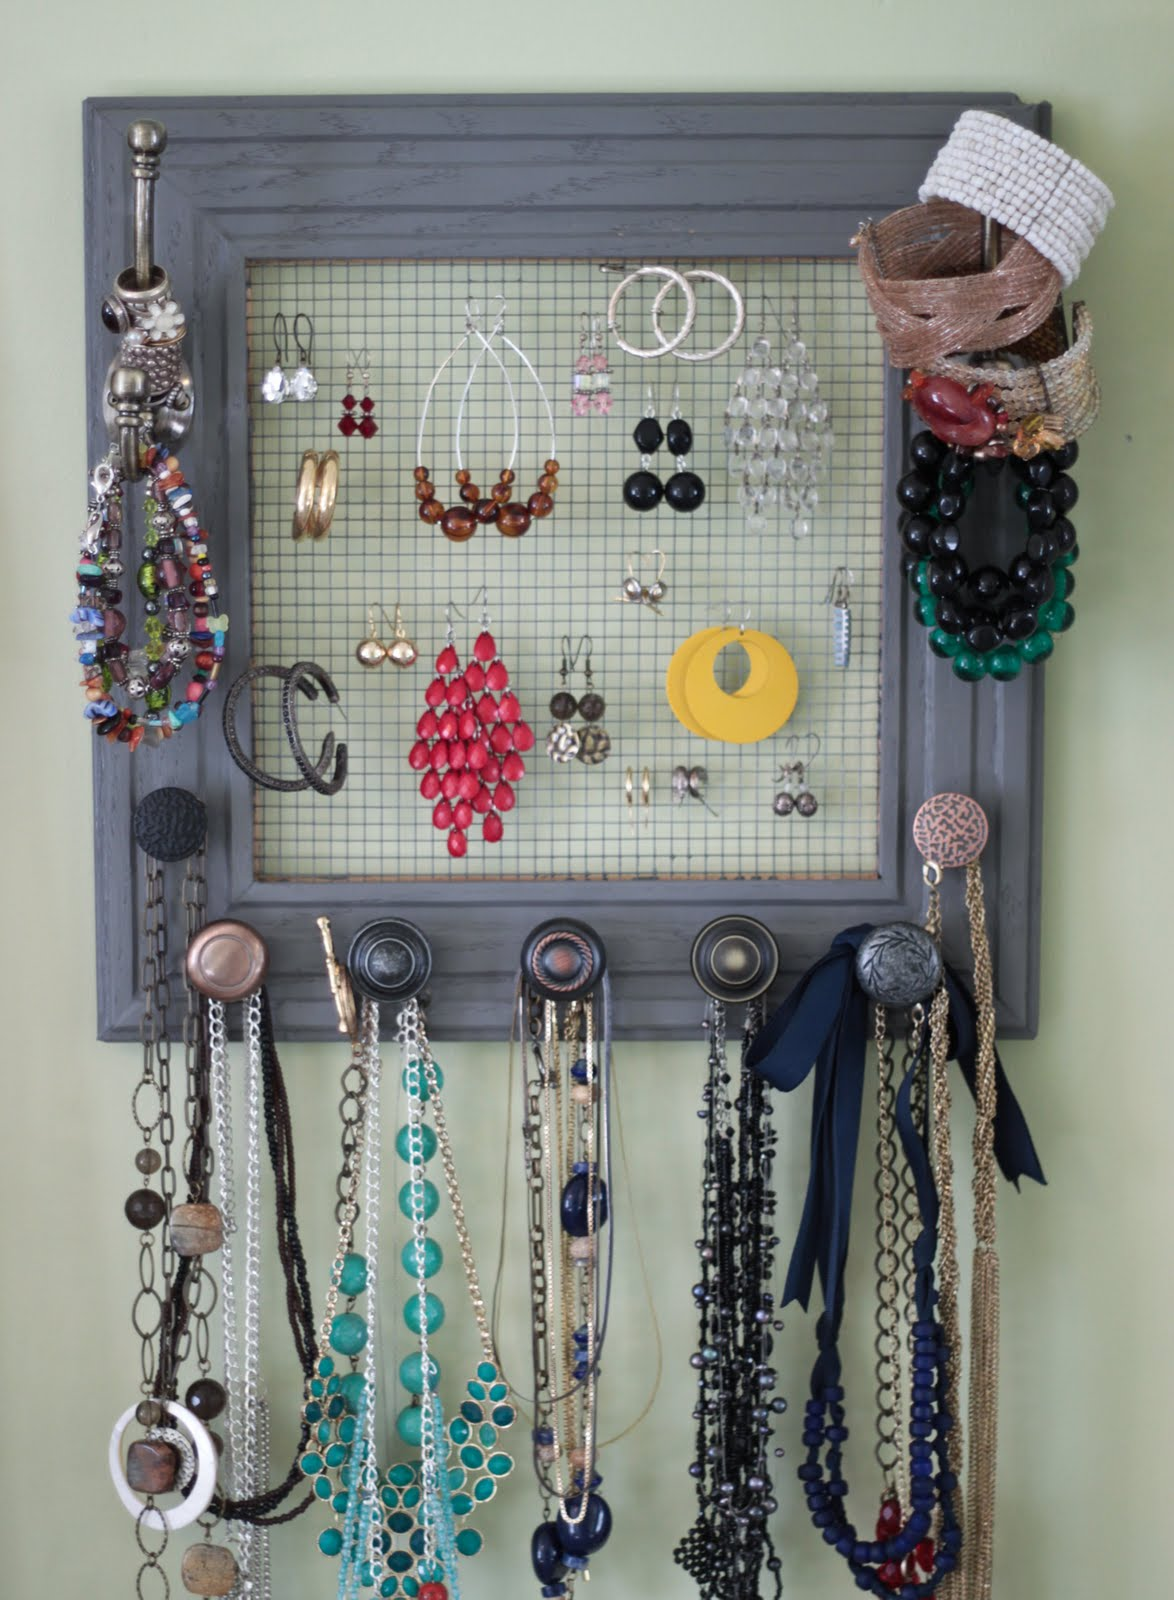 Rach's Blog: DIY Jewelry Box On My Wall